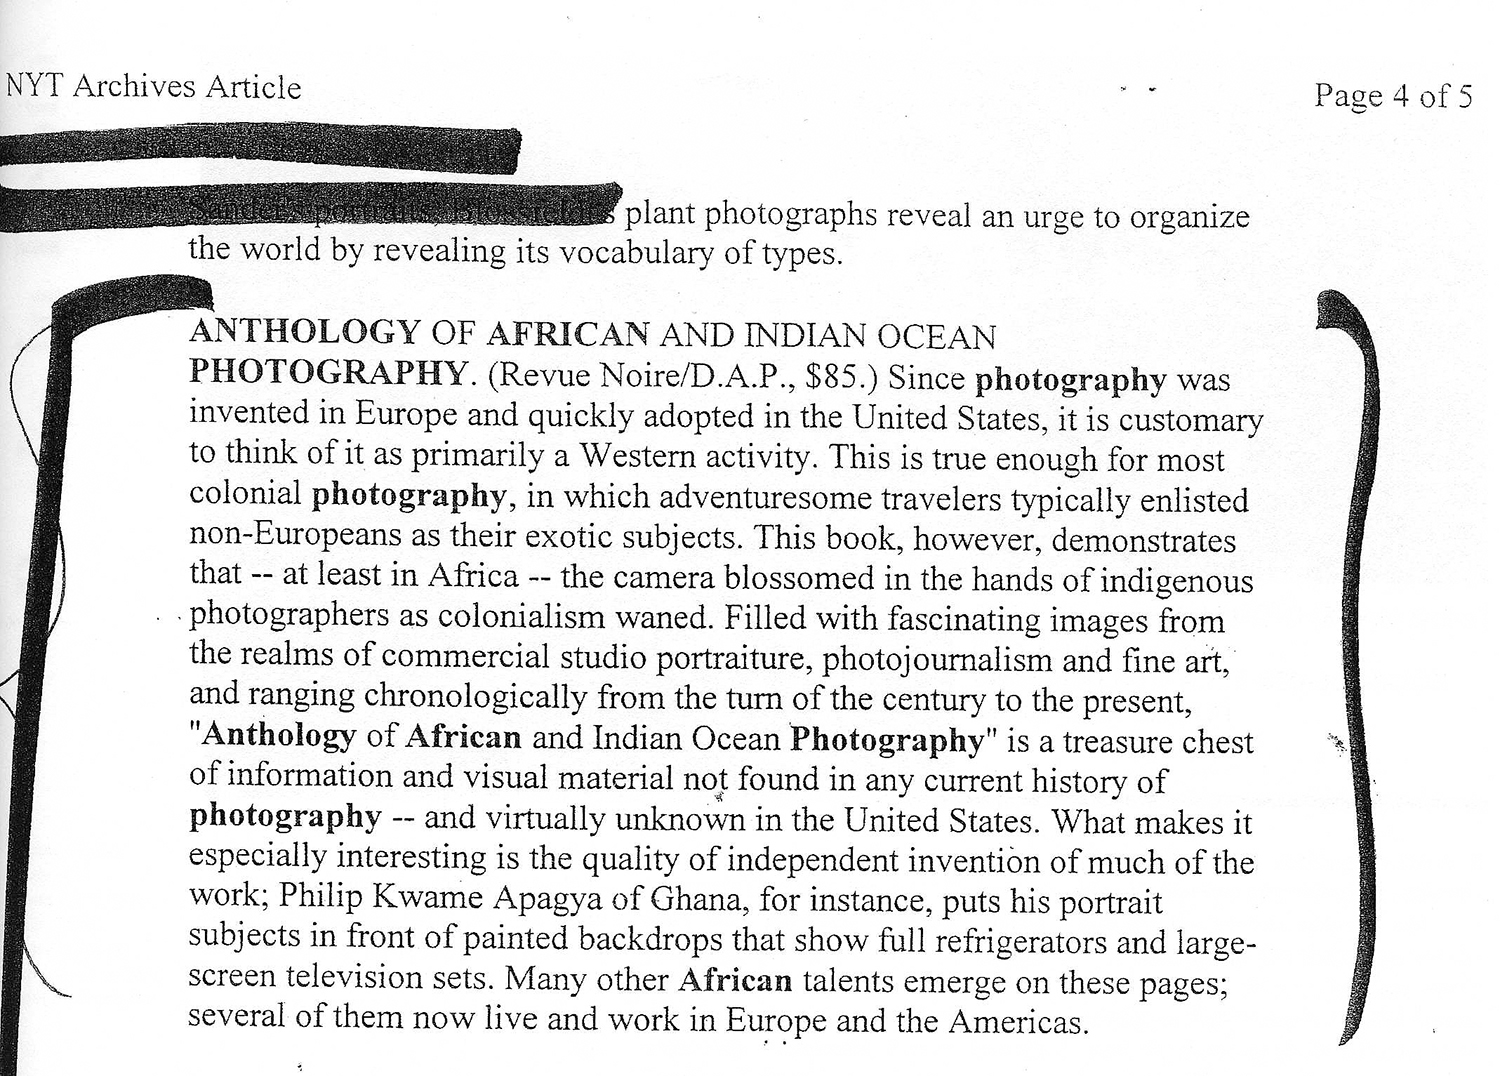 REVUE NOIRE press release: New York Times oct 1999. Anthology of African Photography, Revue Noire-DAP publishers